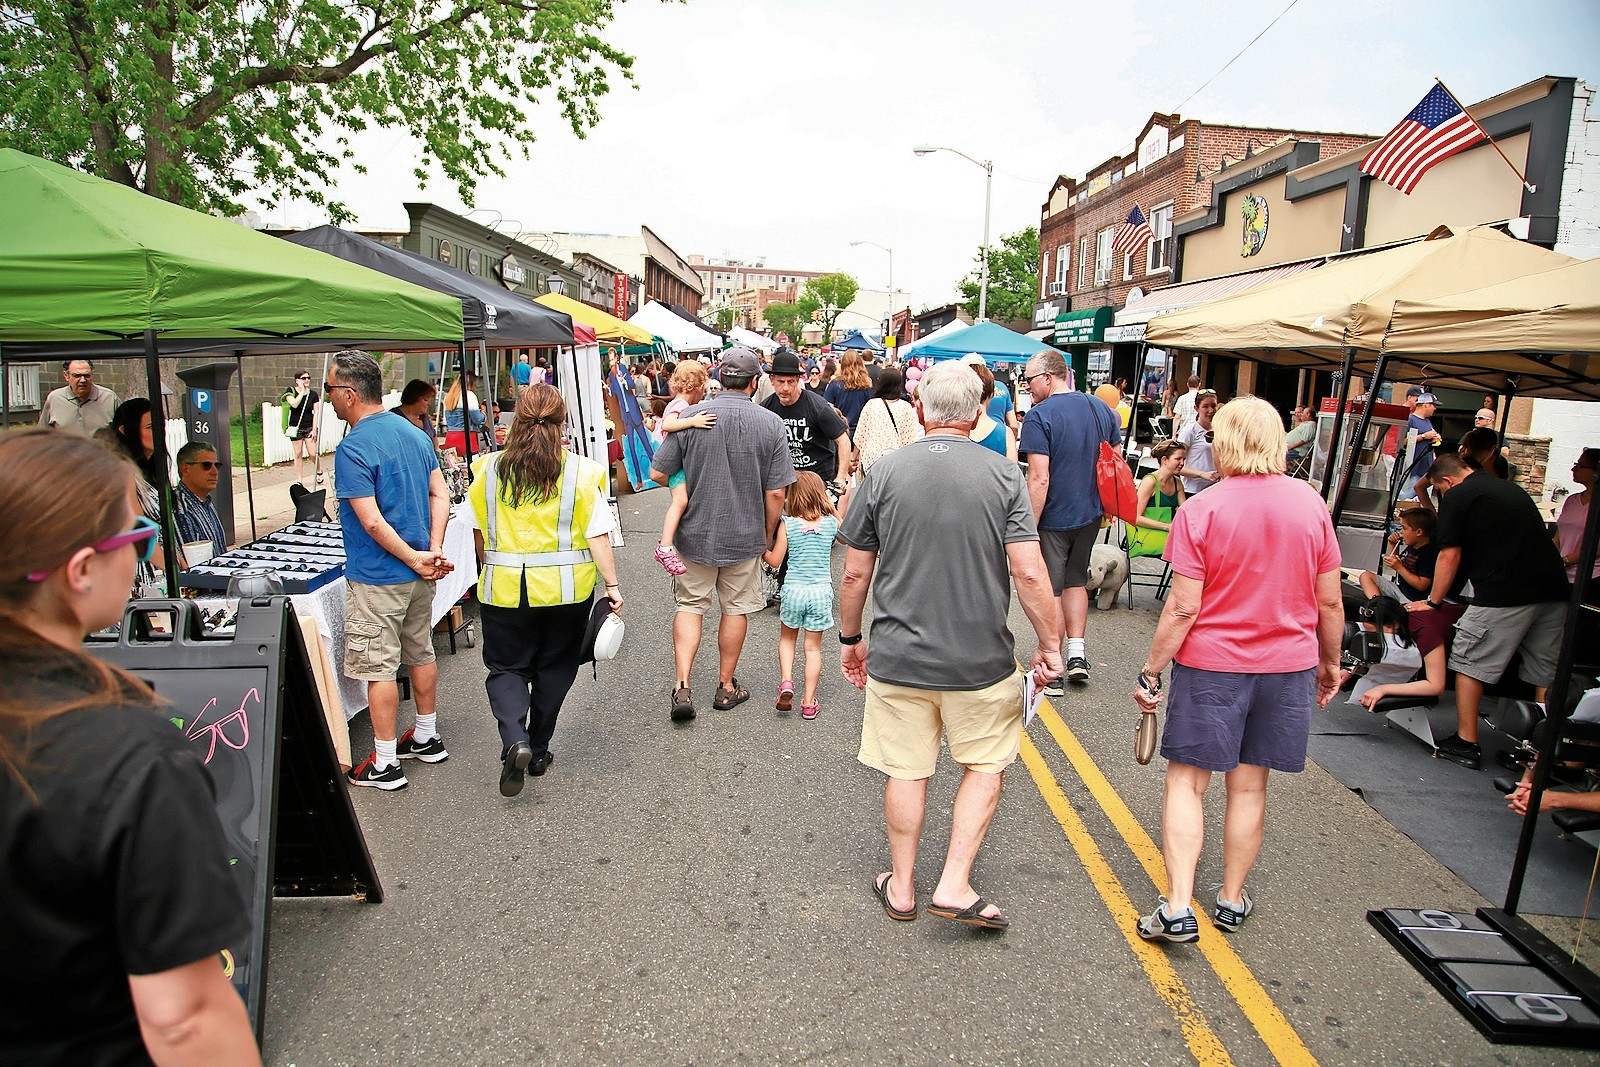 Hundreds of people from all over the area came to the village for the third annual EAT.SHOP.ROCK street fair, the most successful yet.